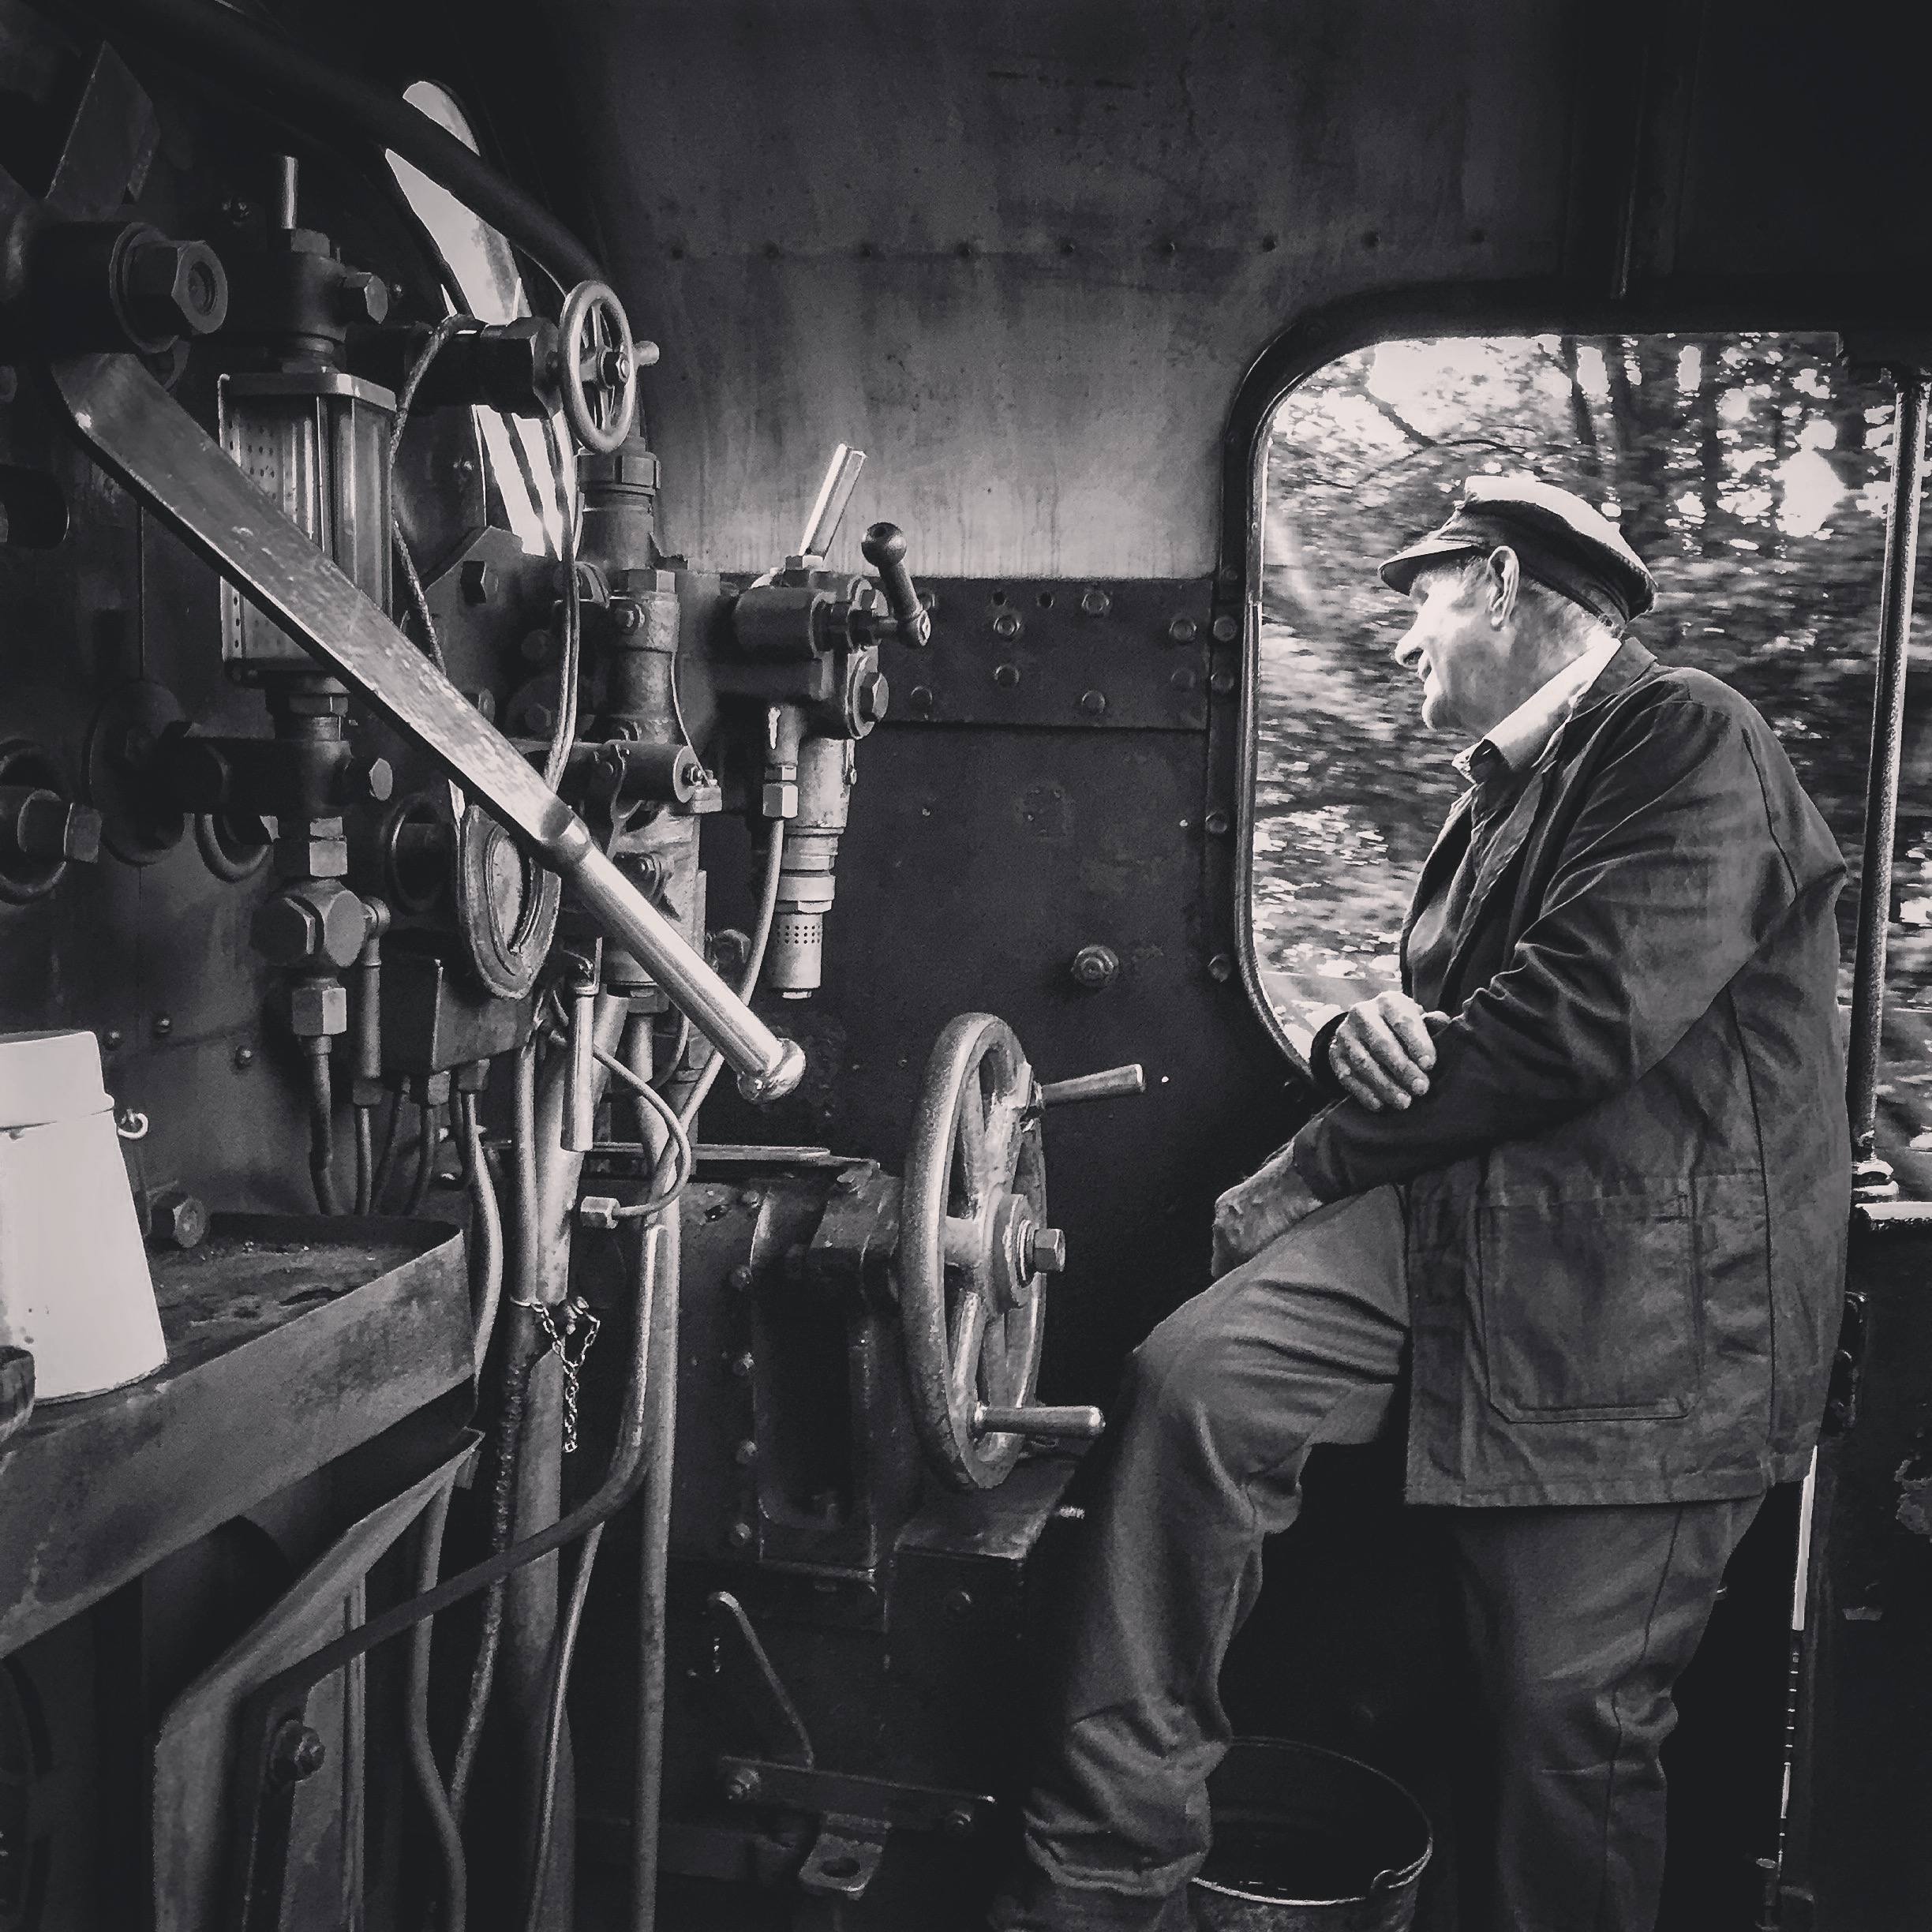 NYMR Driver Dave Jackson on 25/09/15.